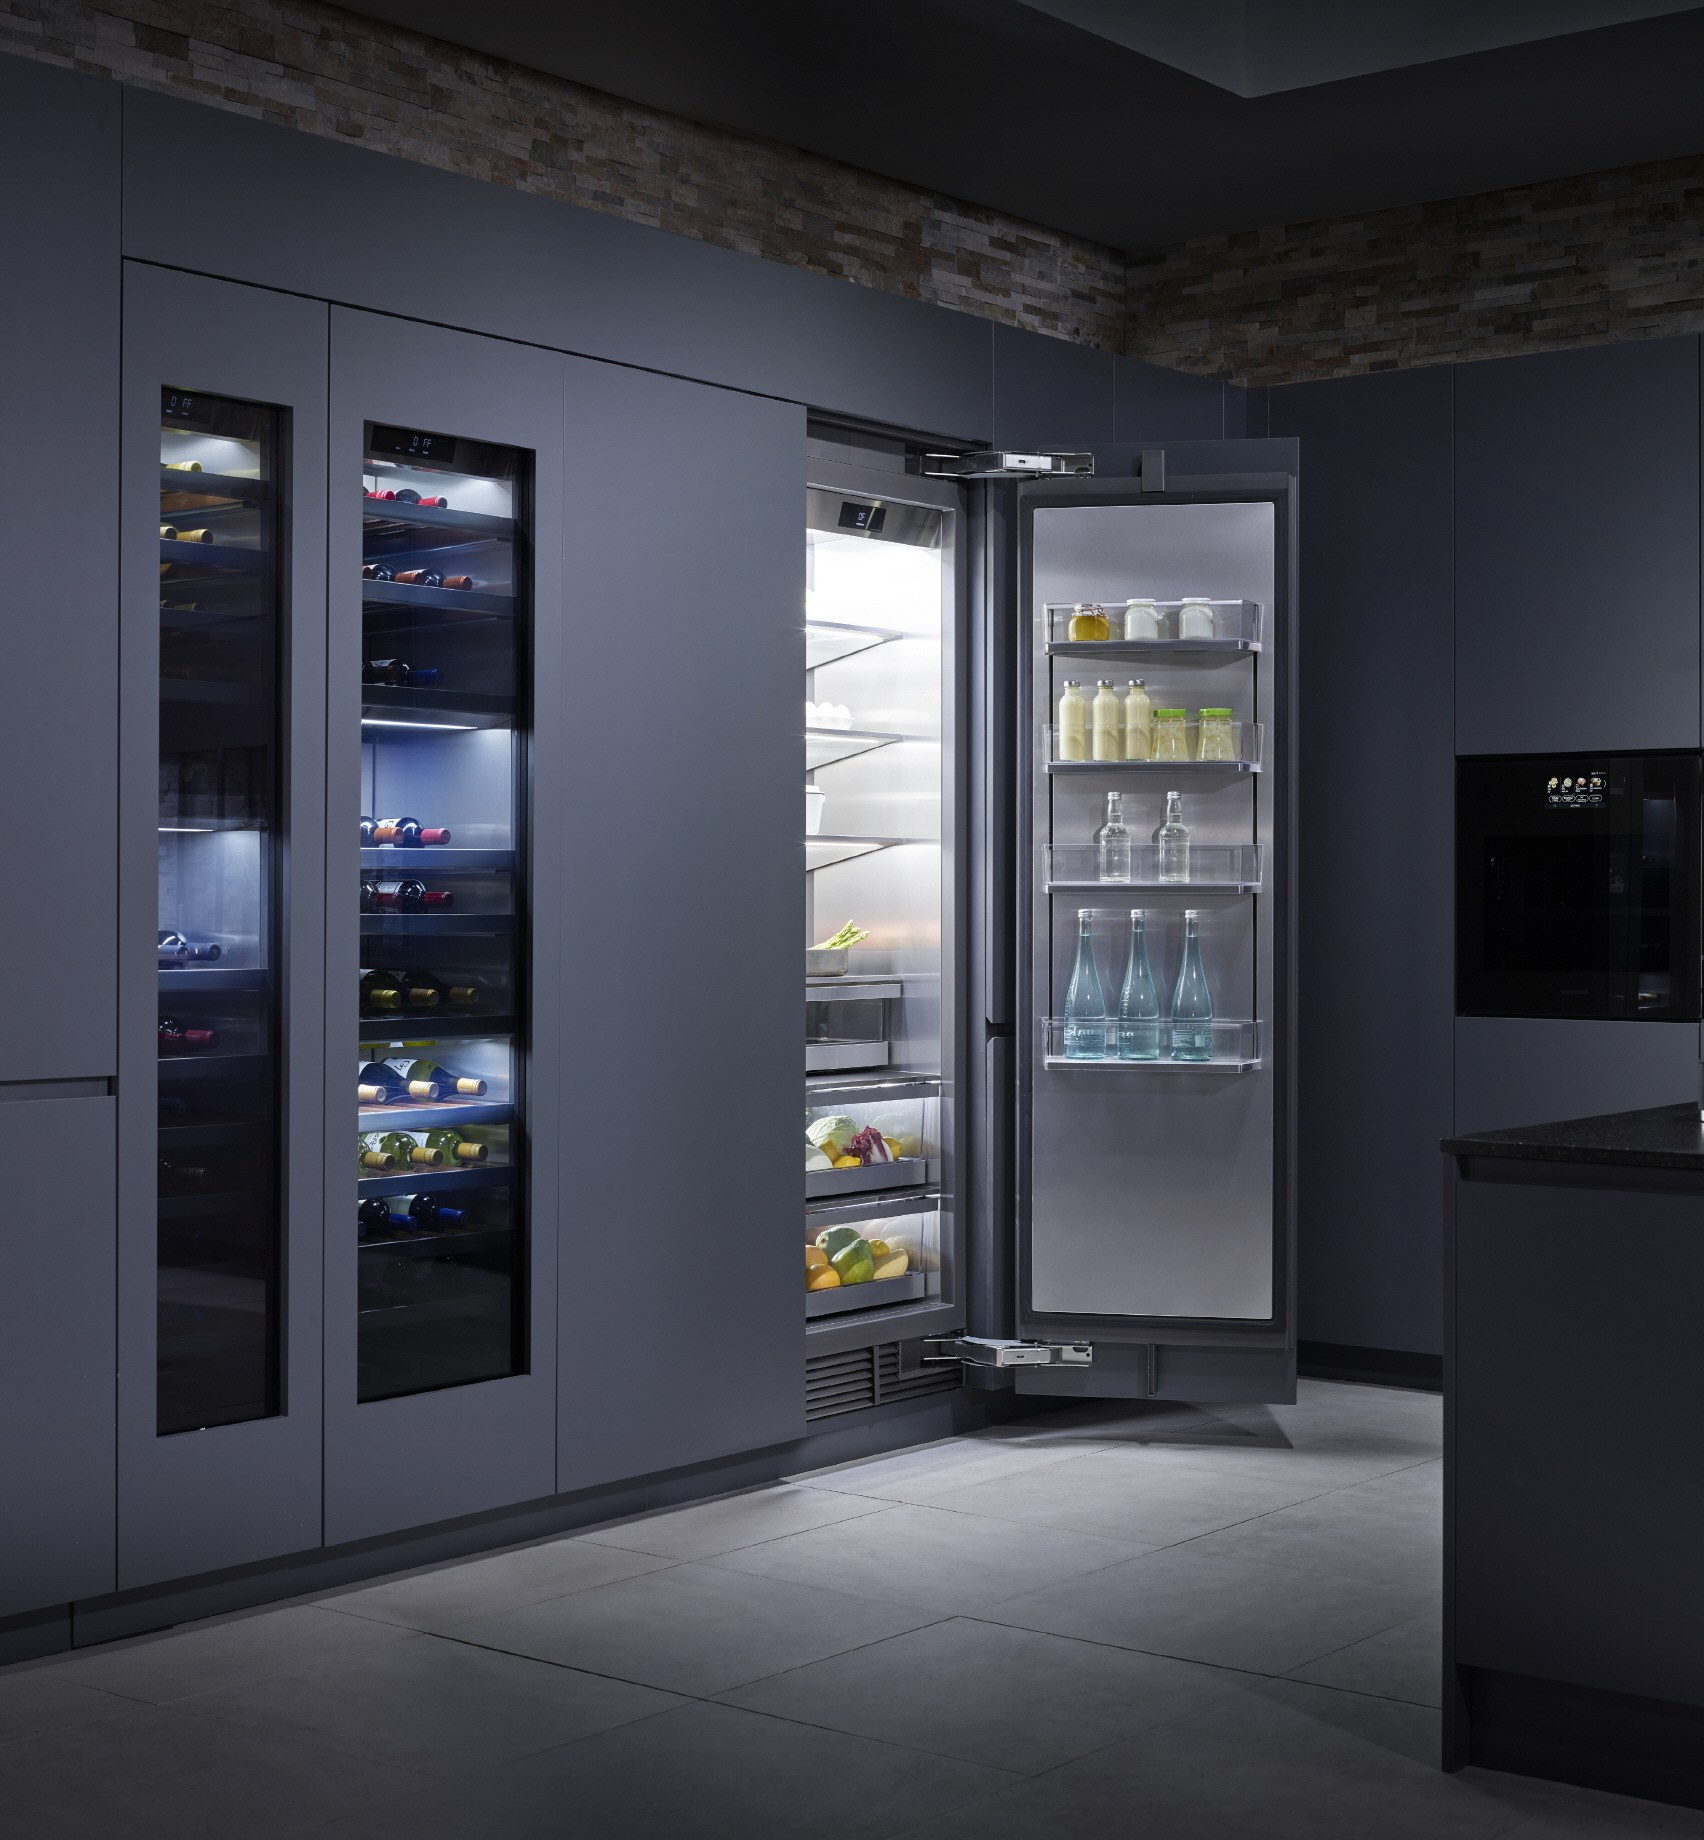 SIGNATURE KITCHEN SUITE refrigerator and wine cellar. The refrigerator opening its door and showing inside filled up with various bottles and foods.